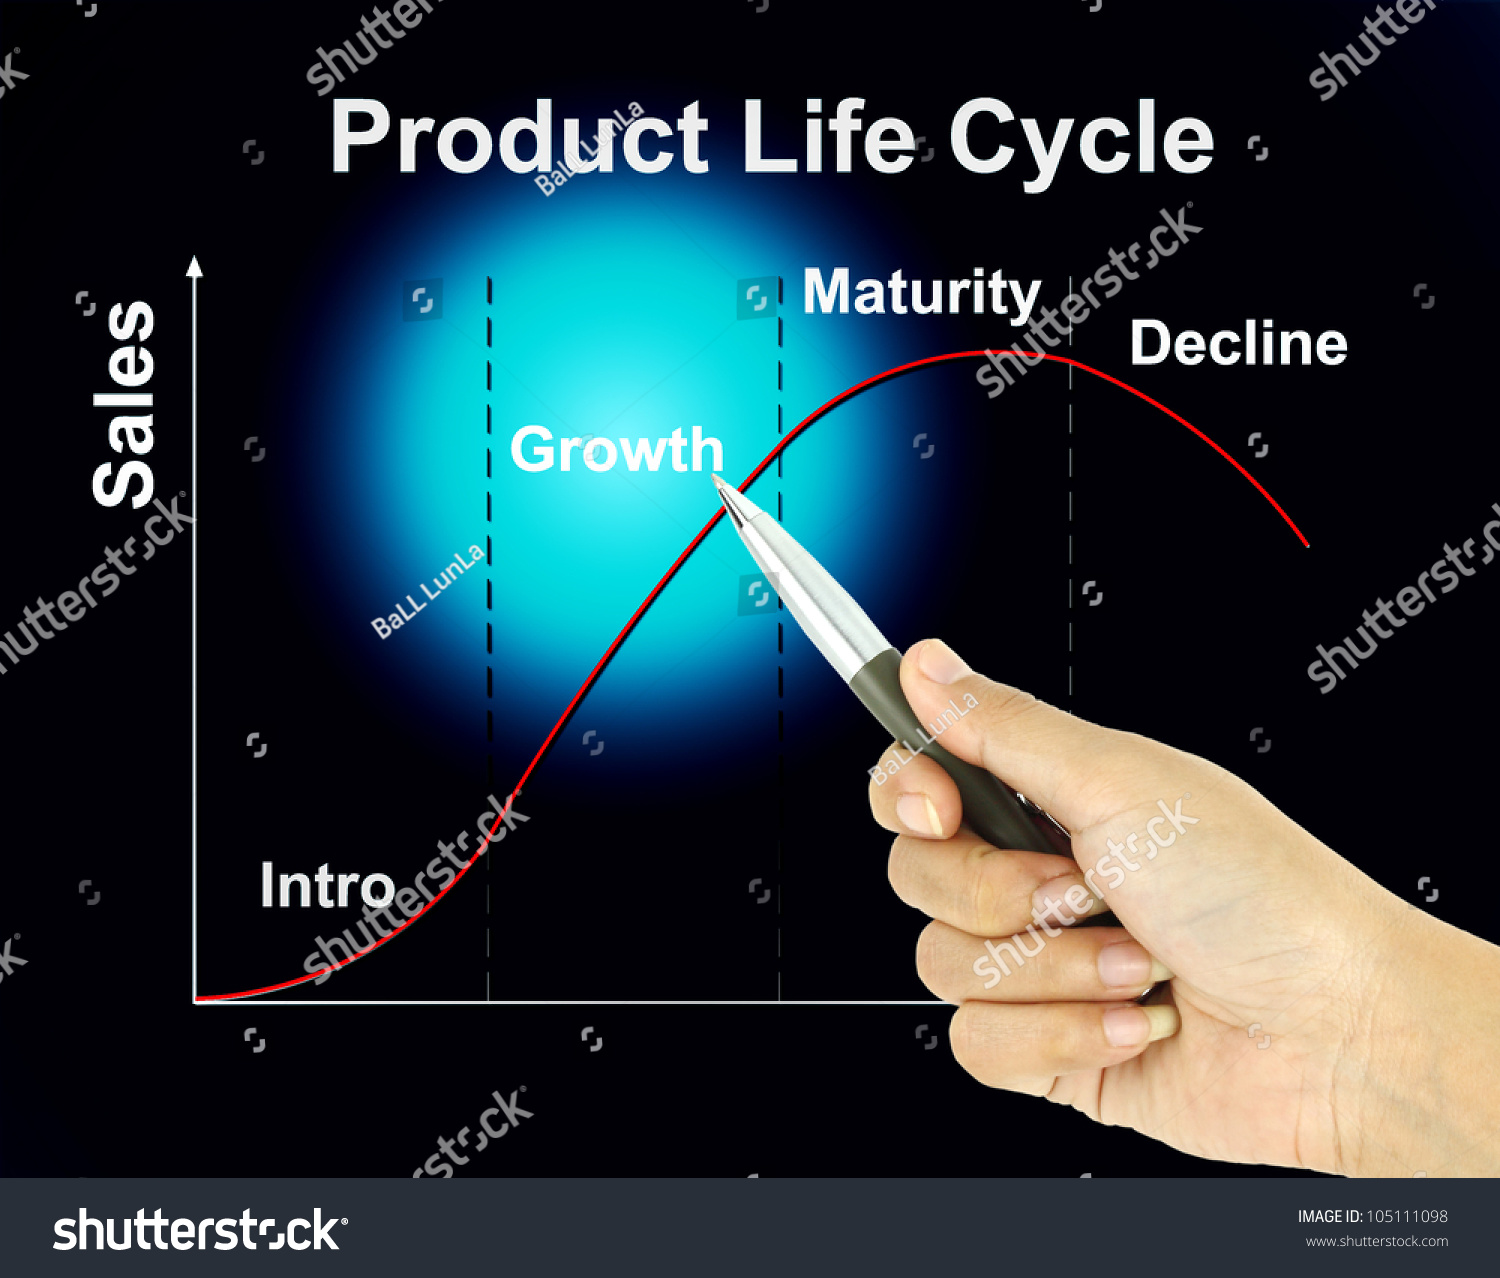 the product life cycle and product market expansion grid The product life cycle describes the period of time over which  mature firm a mature firm is a company that is well-established in its industry,.